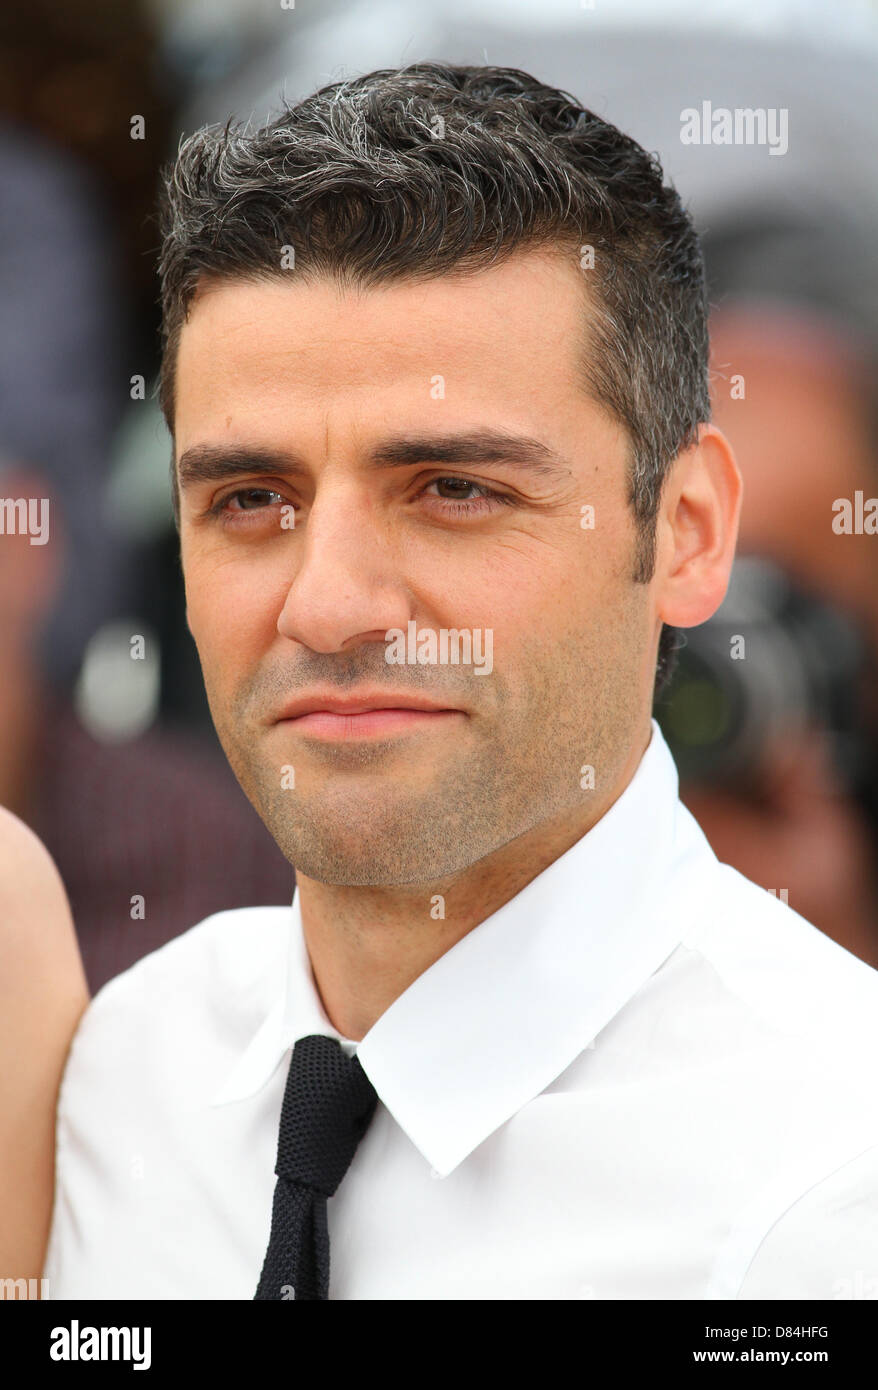 OSCAR ISAAC INSIDE LLEWYN DAVIS. PHOTOCALL. CANNES FILM FESTIVAL 2013 CANNES  FRANCE 19 May 2013 - Stock Image